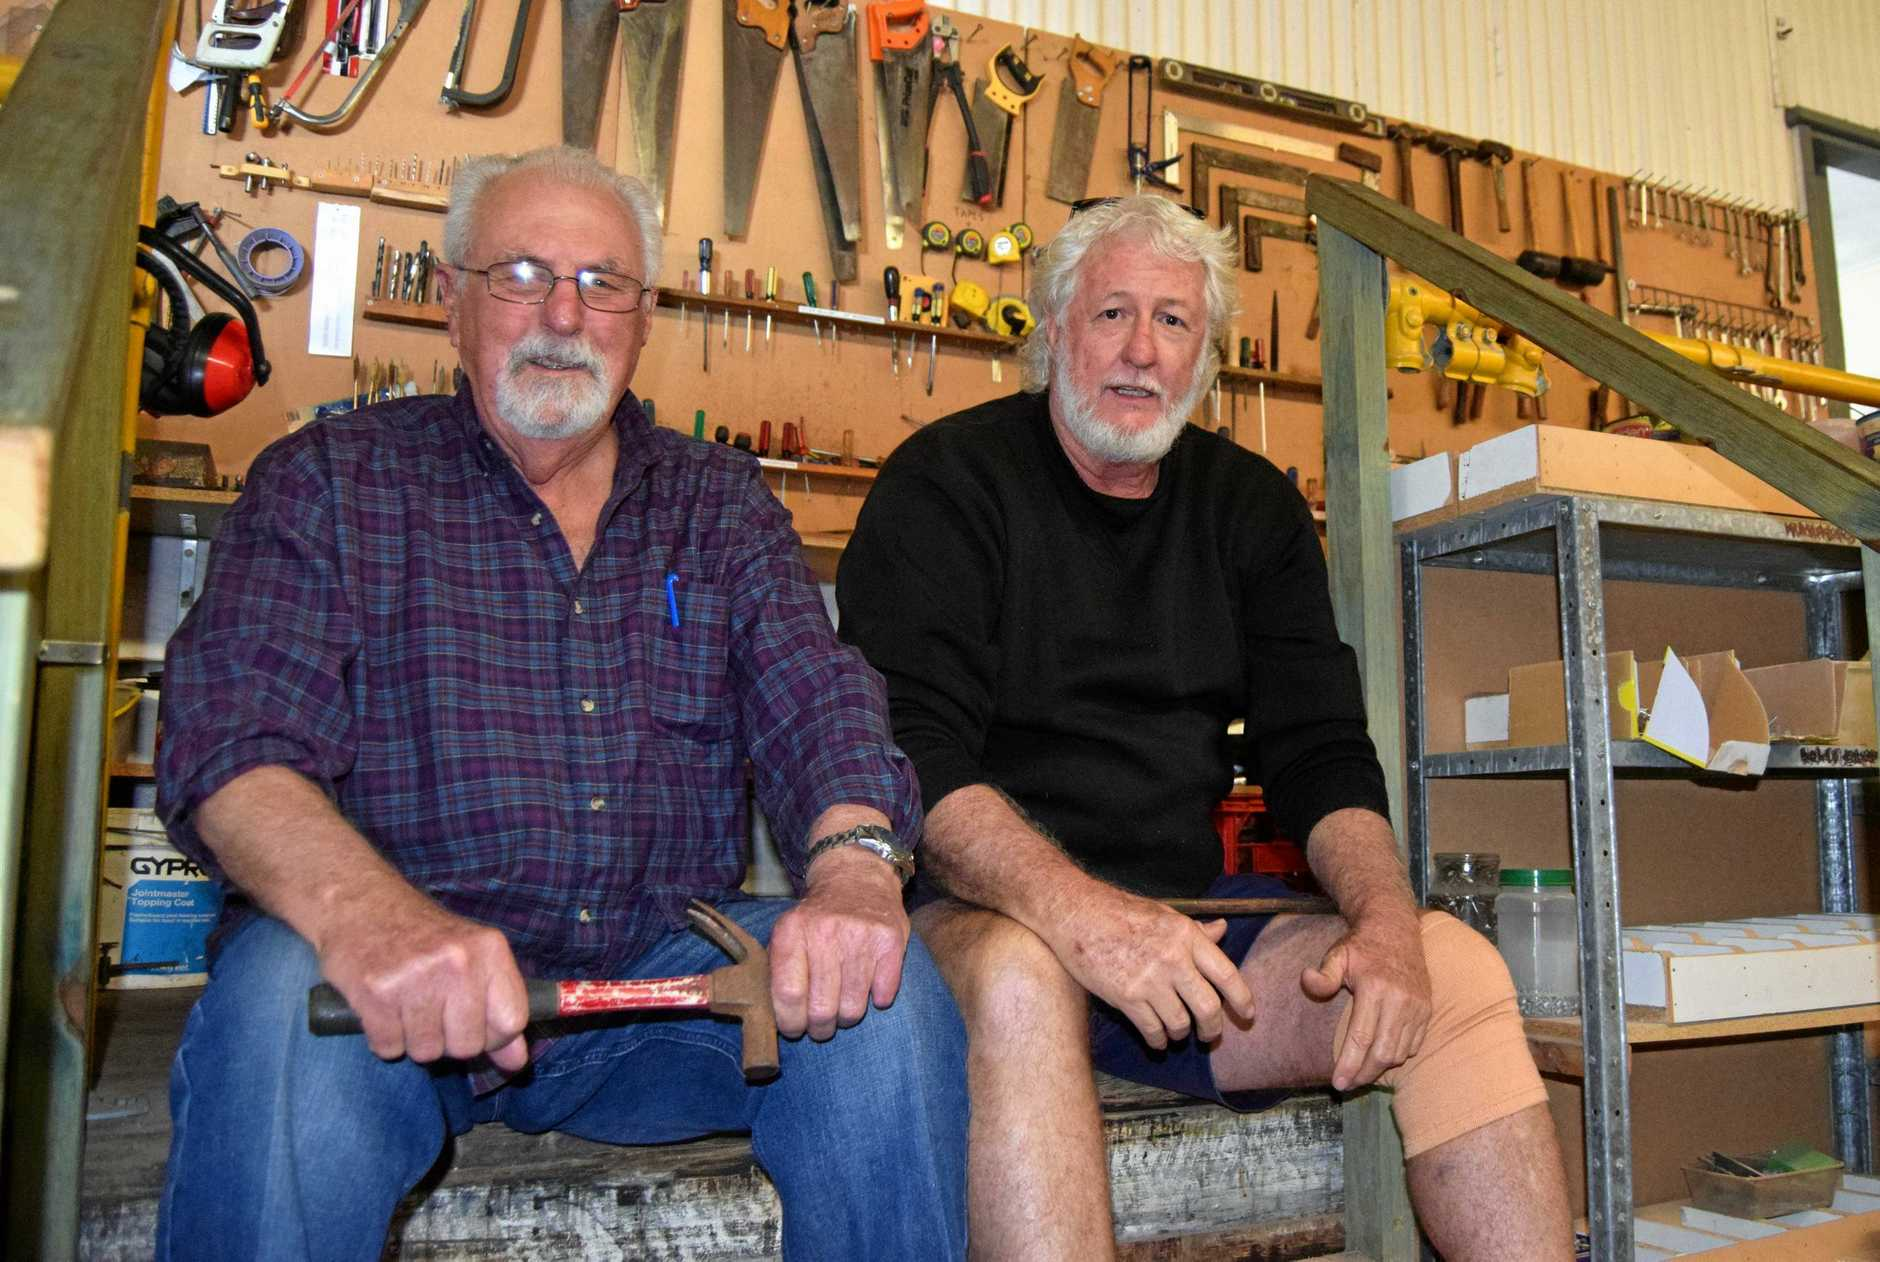 George Curry and Markcus Jaques at Gympie's Men's Shed.